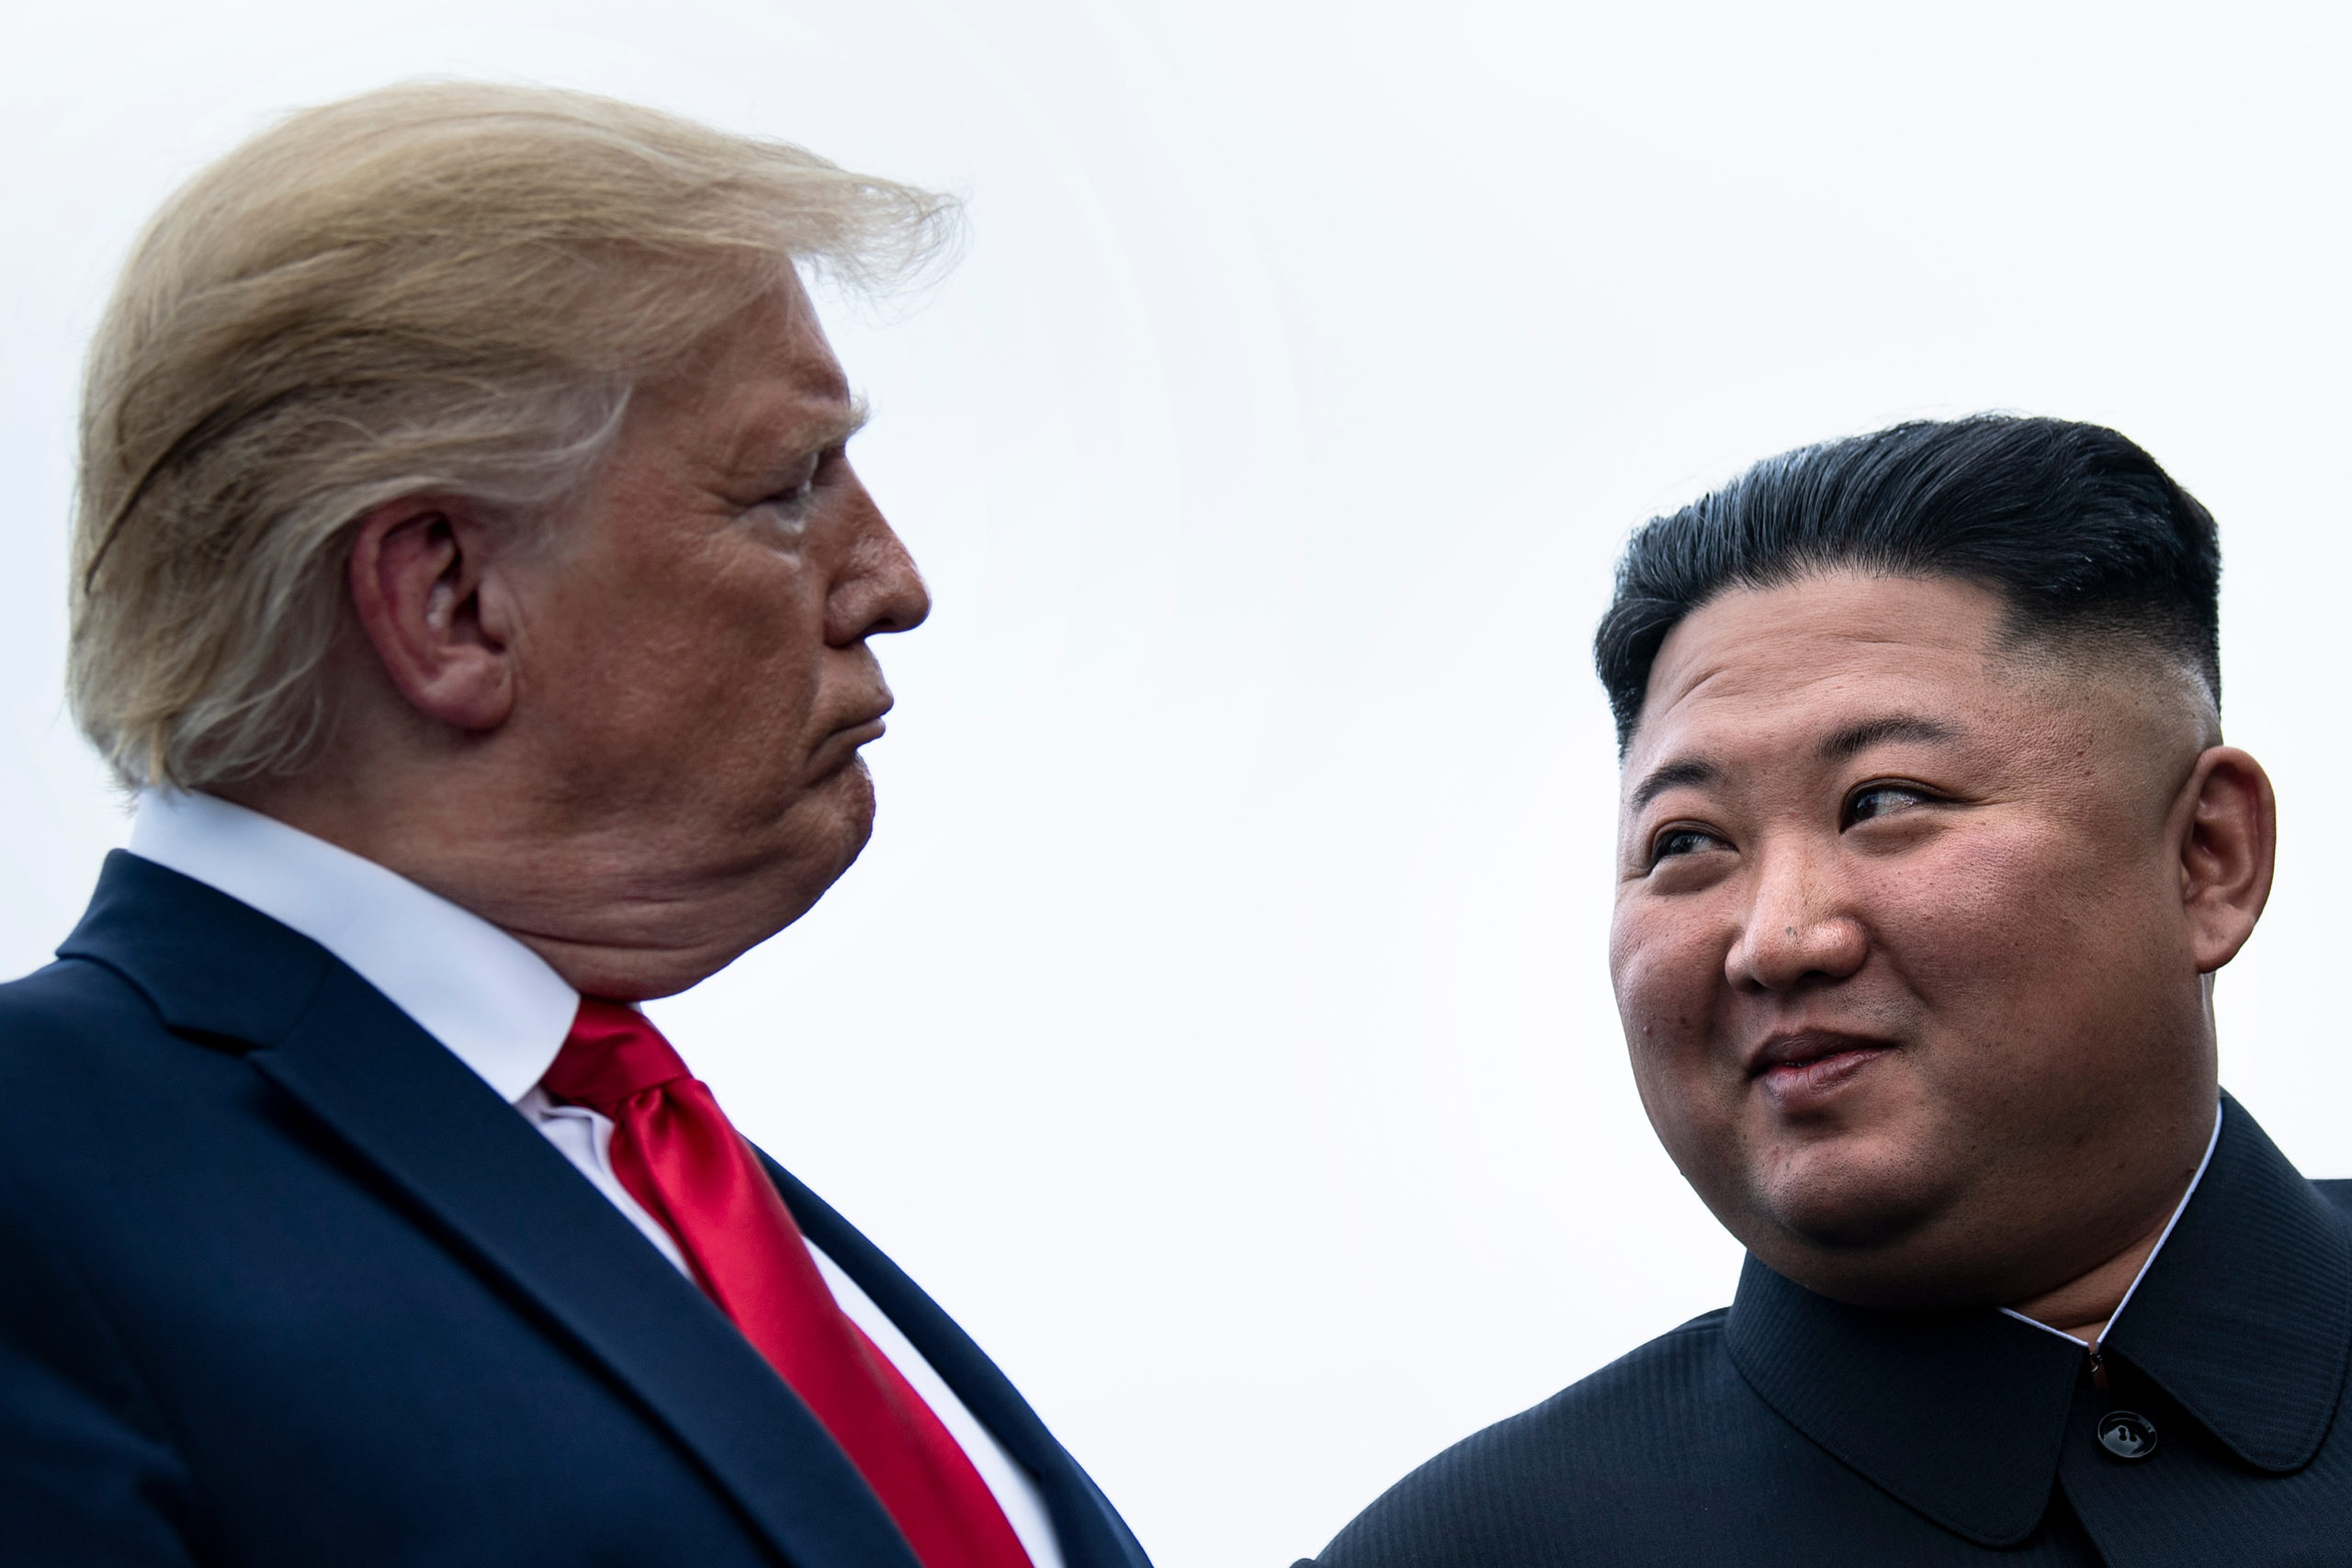 TOPSHOT - US President Donald Trump and North Korea's leader Kim Jong-un talk before a meeting in the Demilitarized Zone(DMZ) on June 30, 2019, in Panmunjom, Korea. (Photo by Brendan Smialowski / AFP)